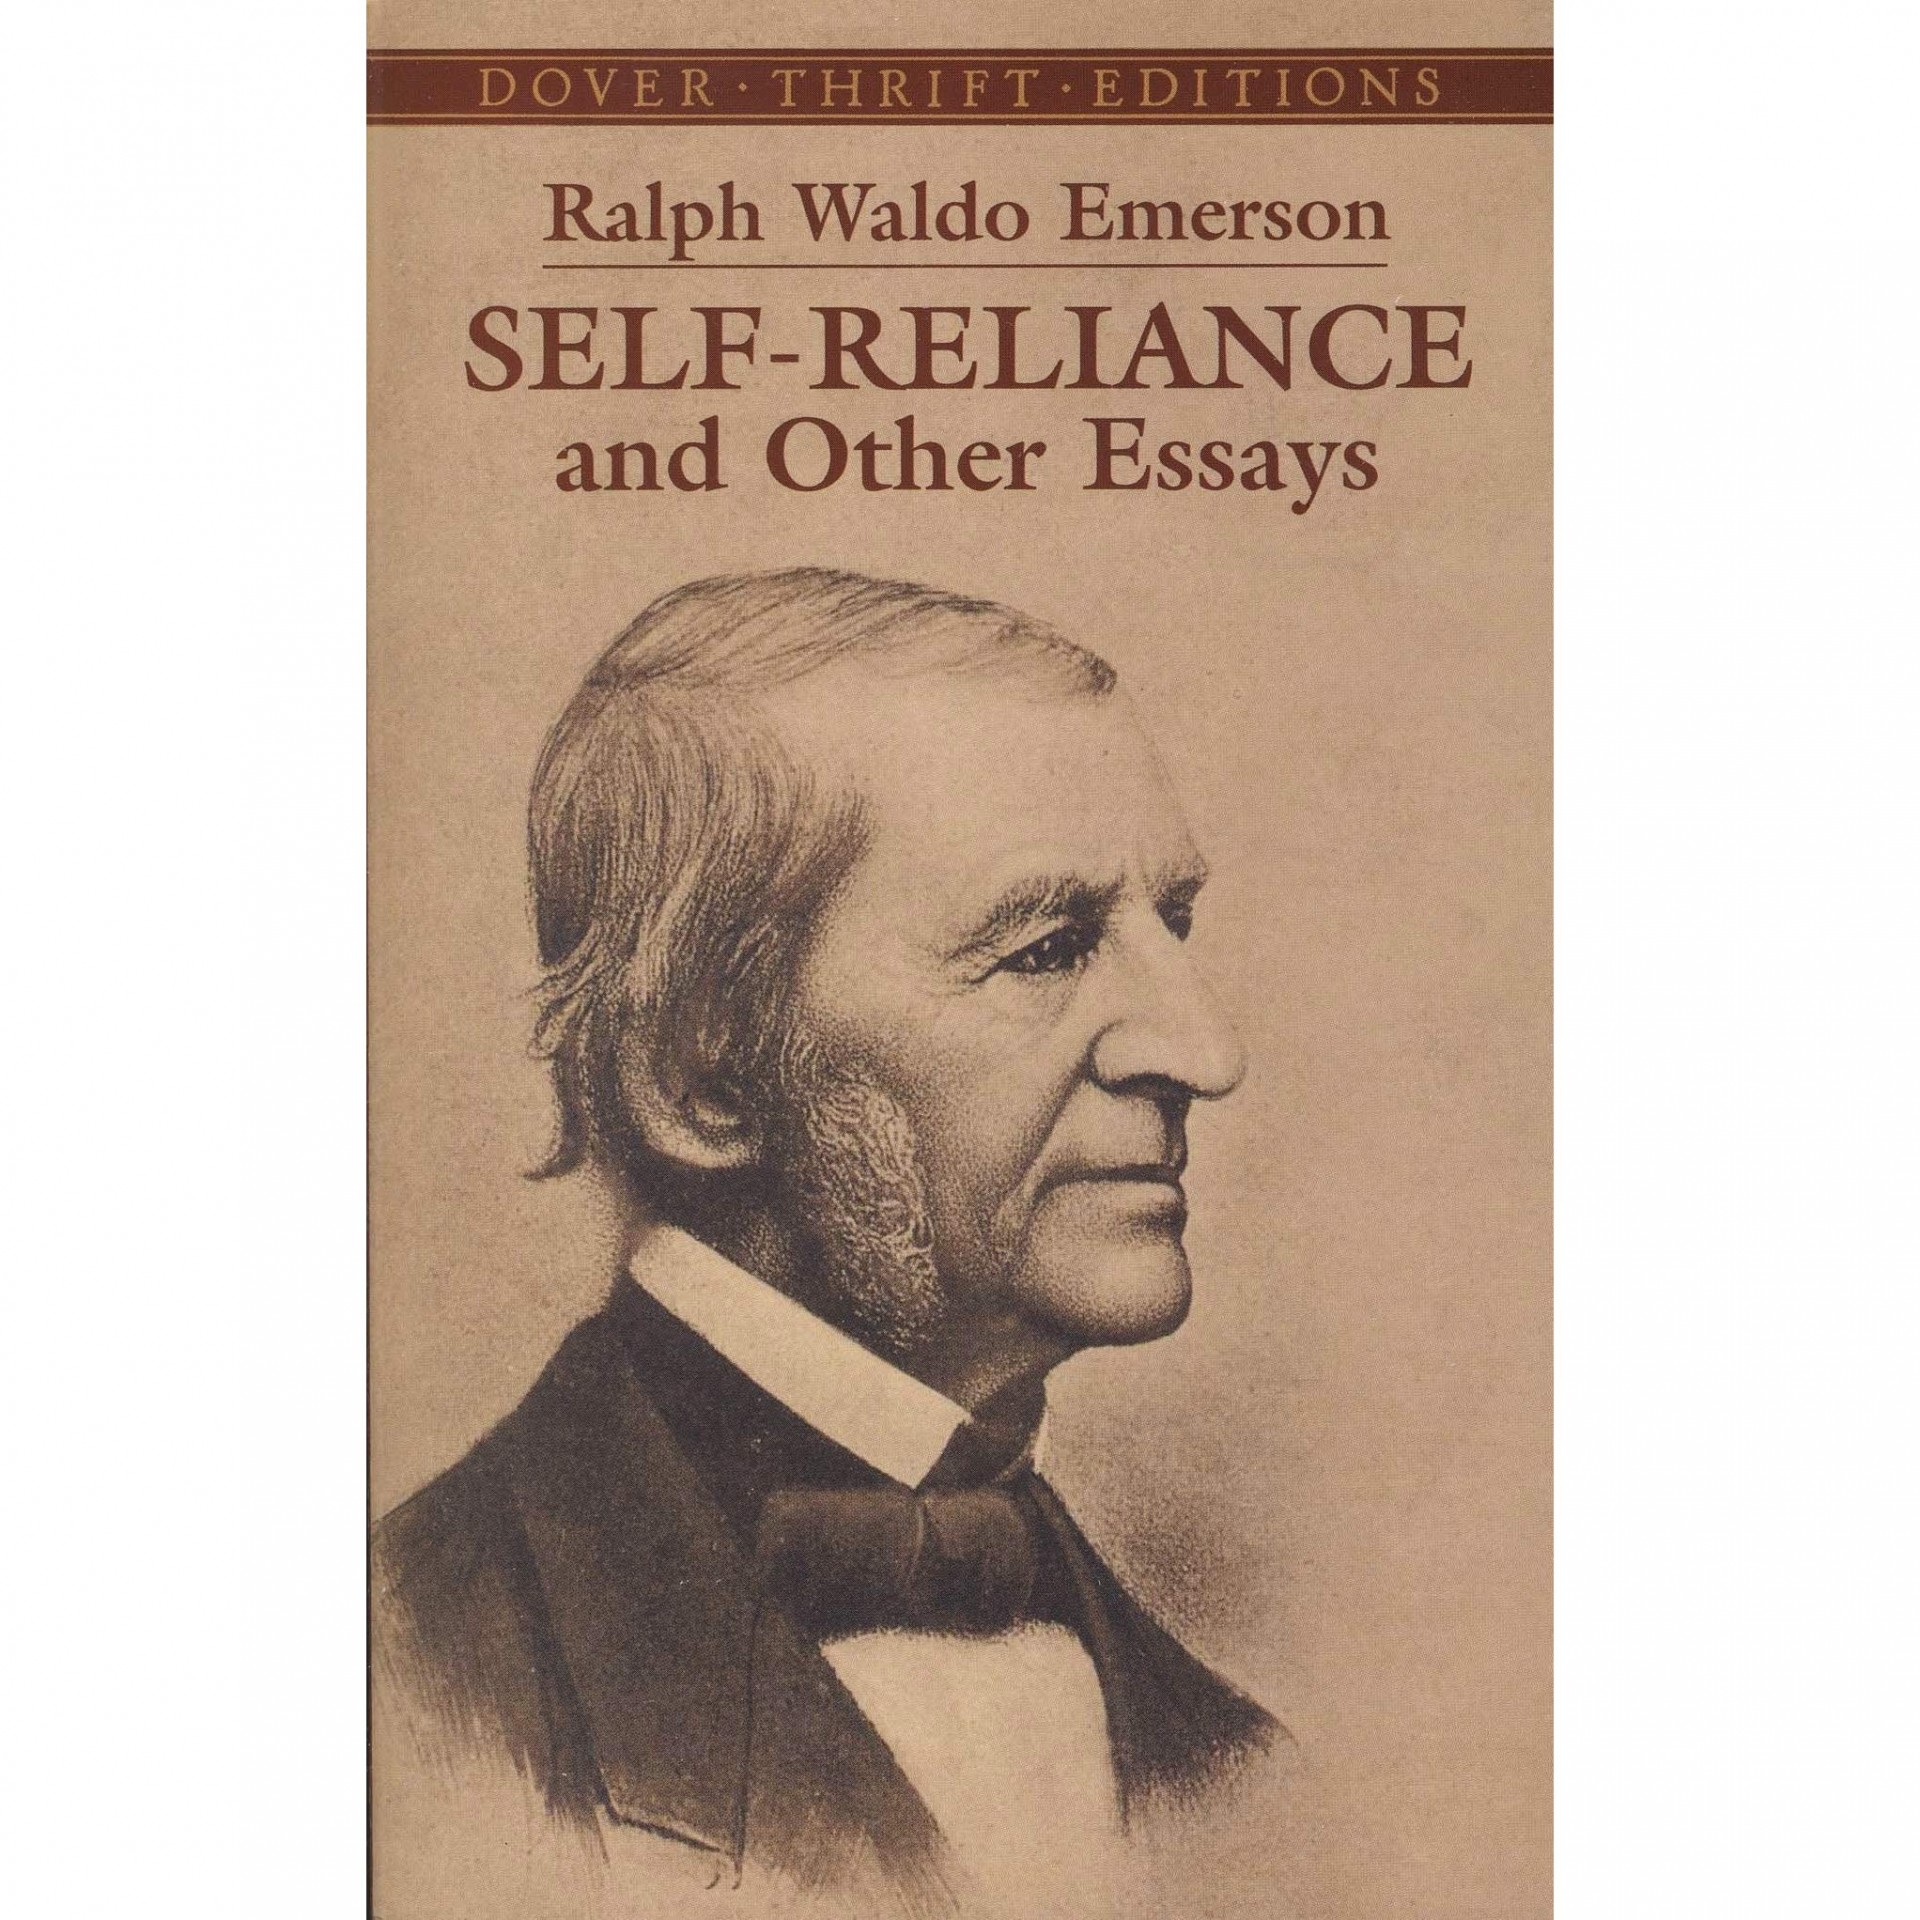 002 Emerson Self Reliance Essay Example  Uy2044 Ss2044 Staggering Summary Translated Into Modern English Analysis1920